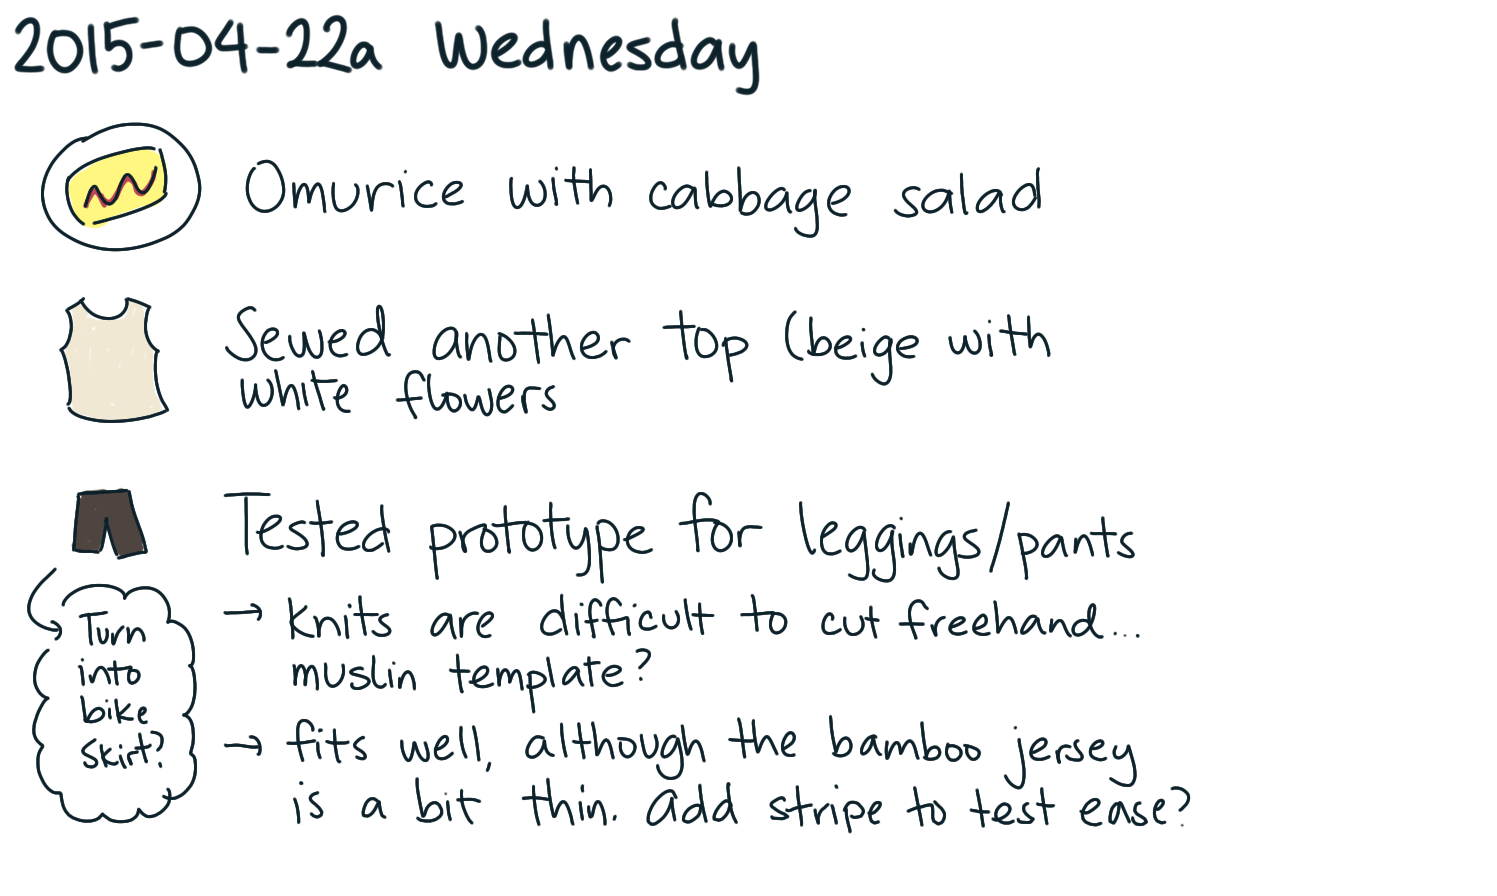 2015-04-22a Wednesday -- index card #journal.png